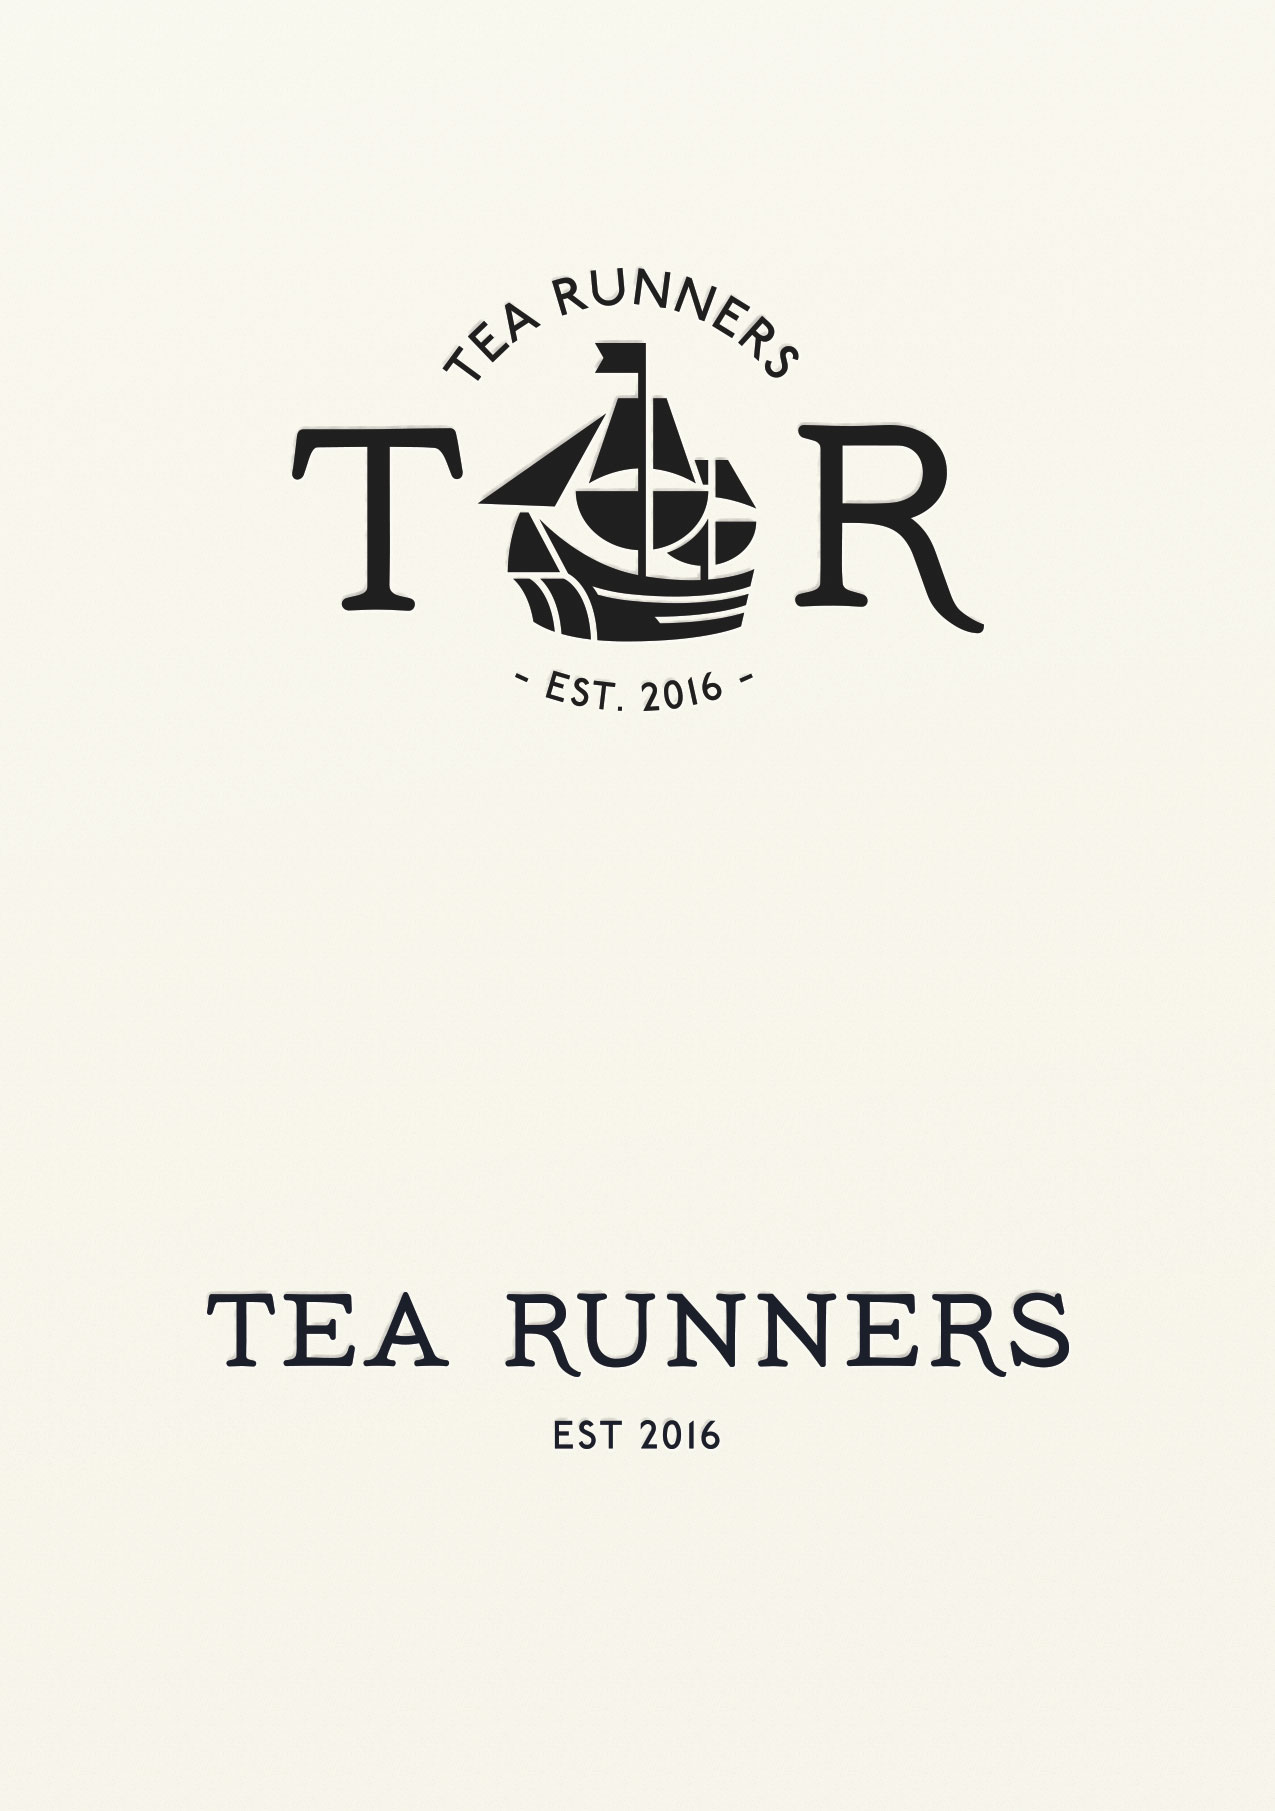 tea-runners-logos